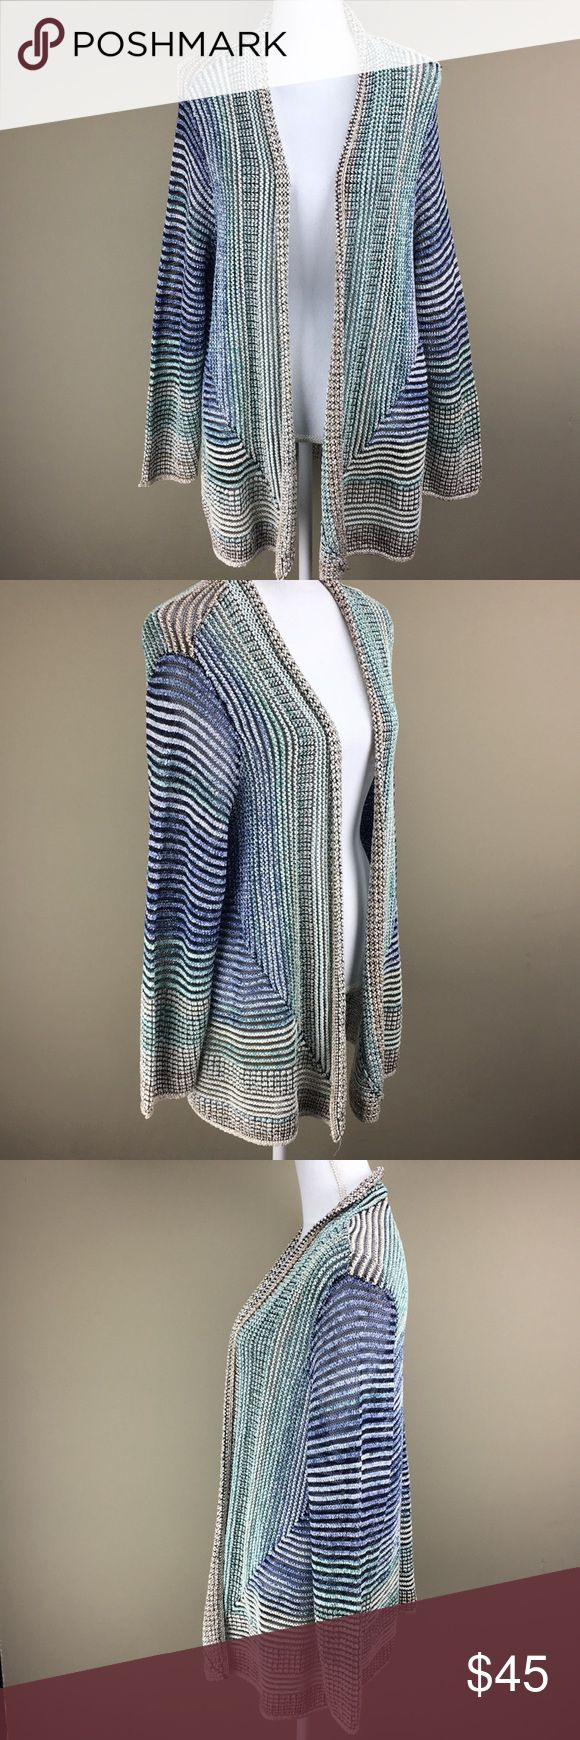 1x NWT nic and Zoe cardi Sz 1x NWT Nic and Zoe 31 inches in length  44 inch bust Open front NIC + ZOE Sweaters Cardigans